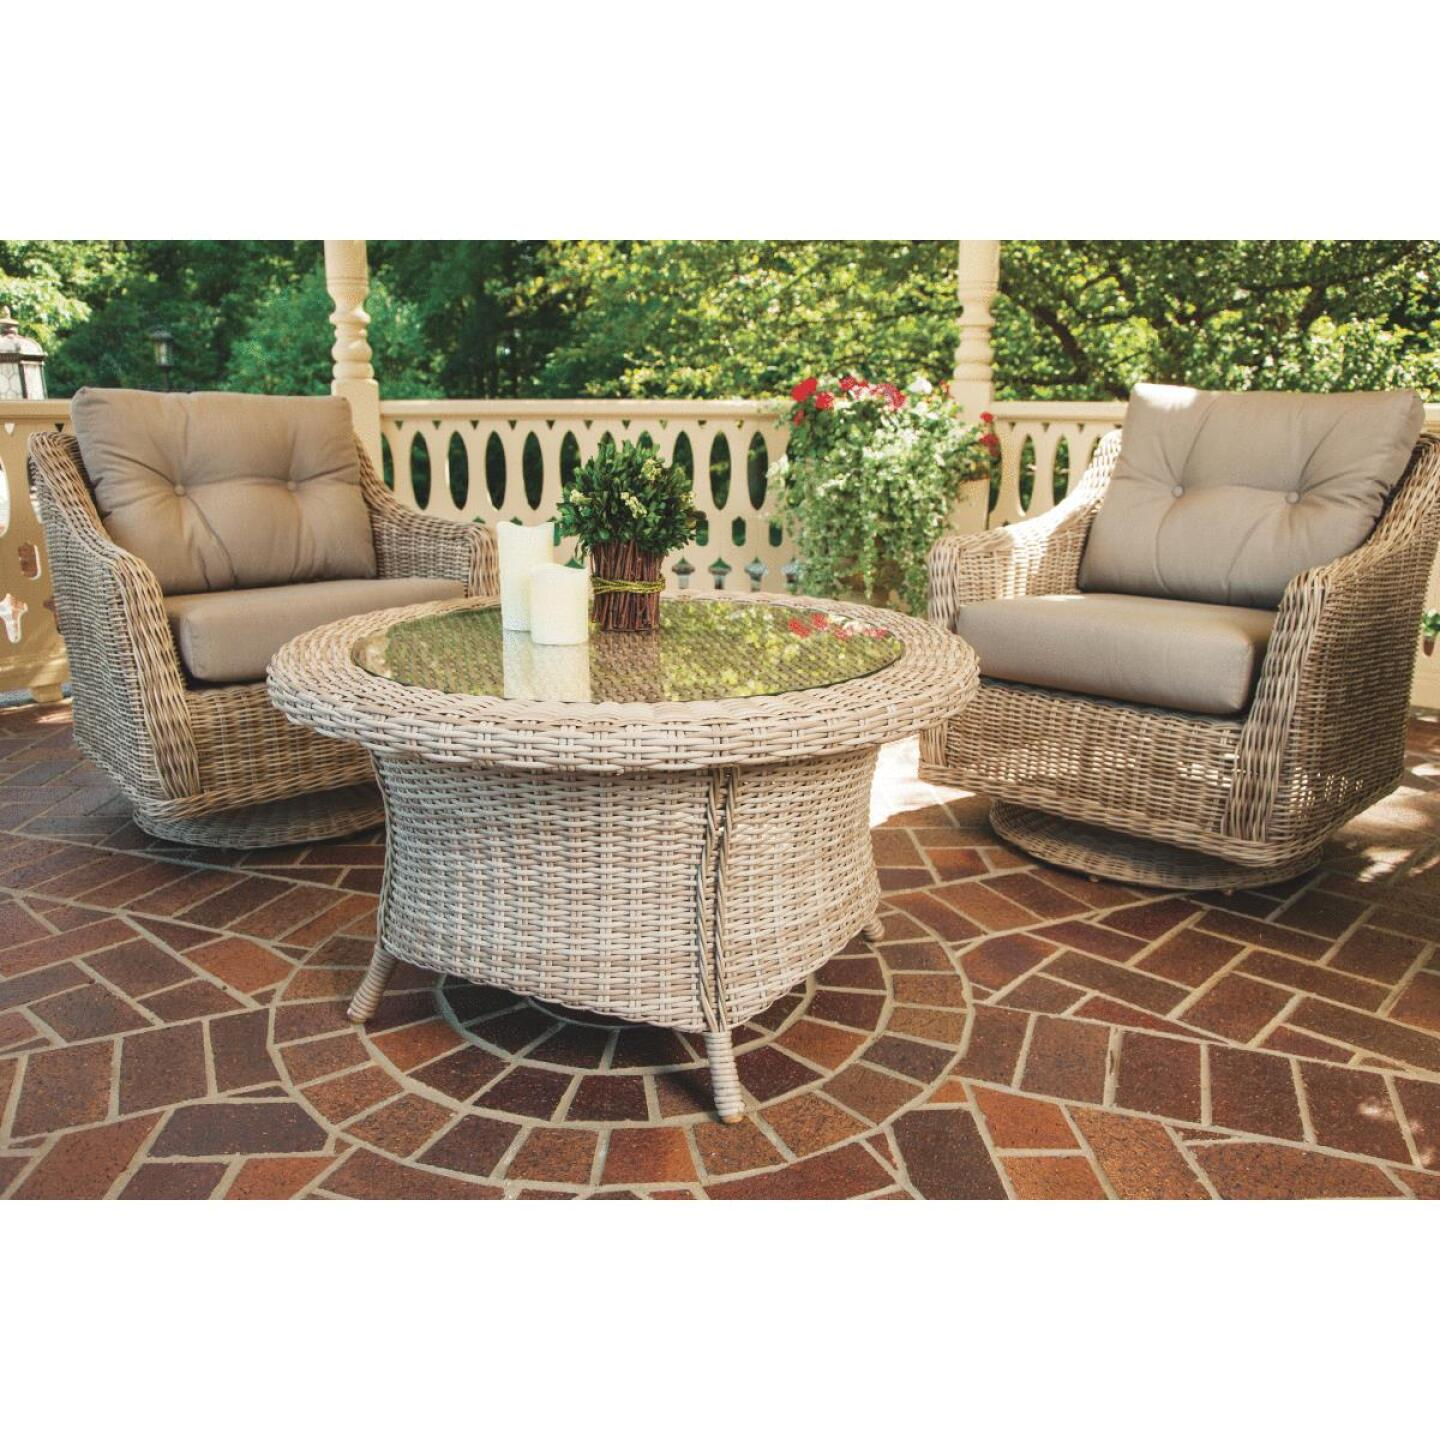 Cambria 37 In. Round Rotating Brown Wicker Table Image 6